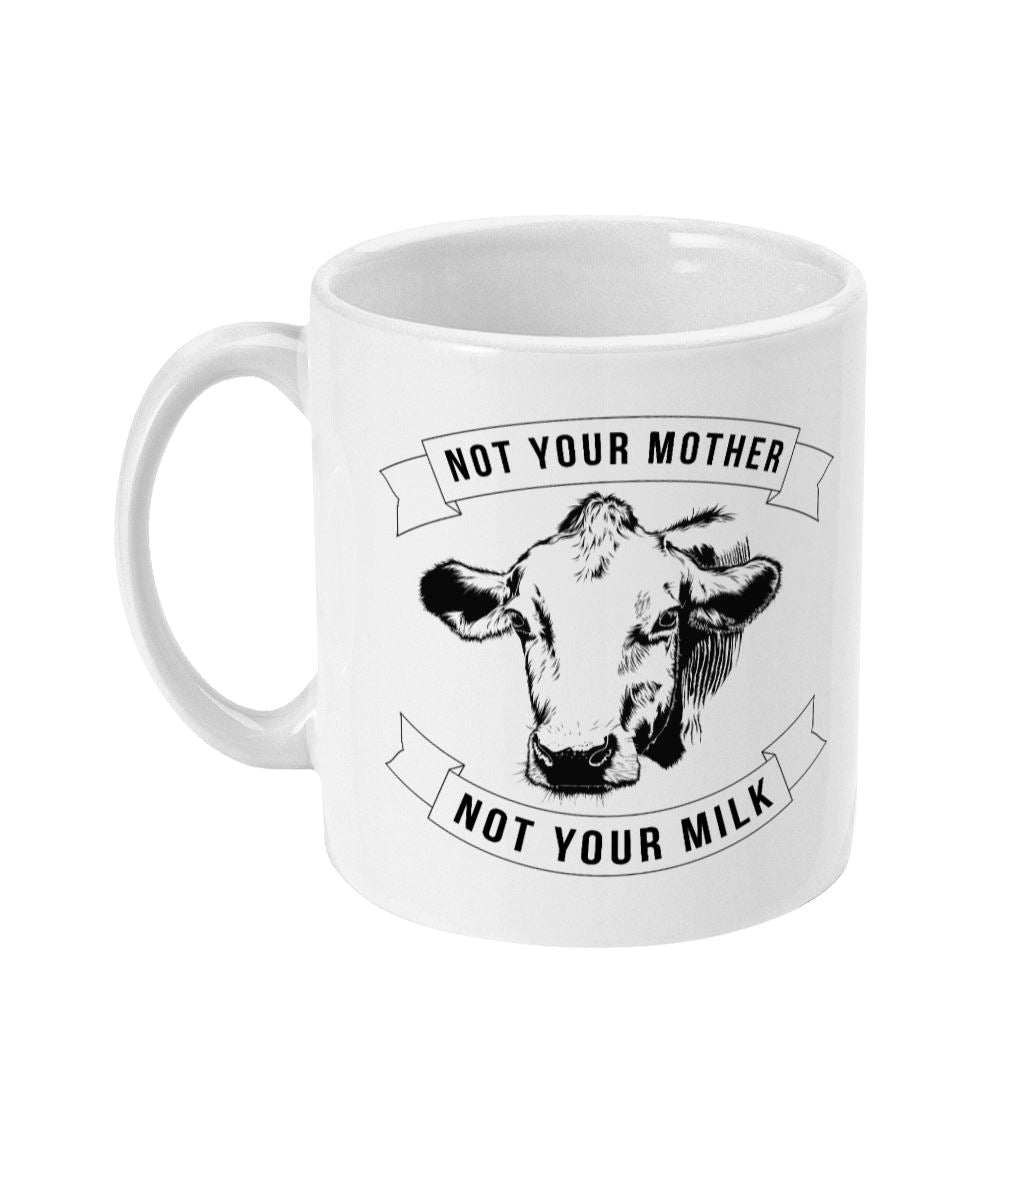 """Not Your Mother, Not Your Milk"" 11oz Vegan Mug Suggested Products Vegan Original Ceramic White"